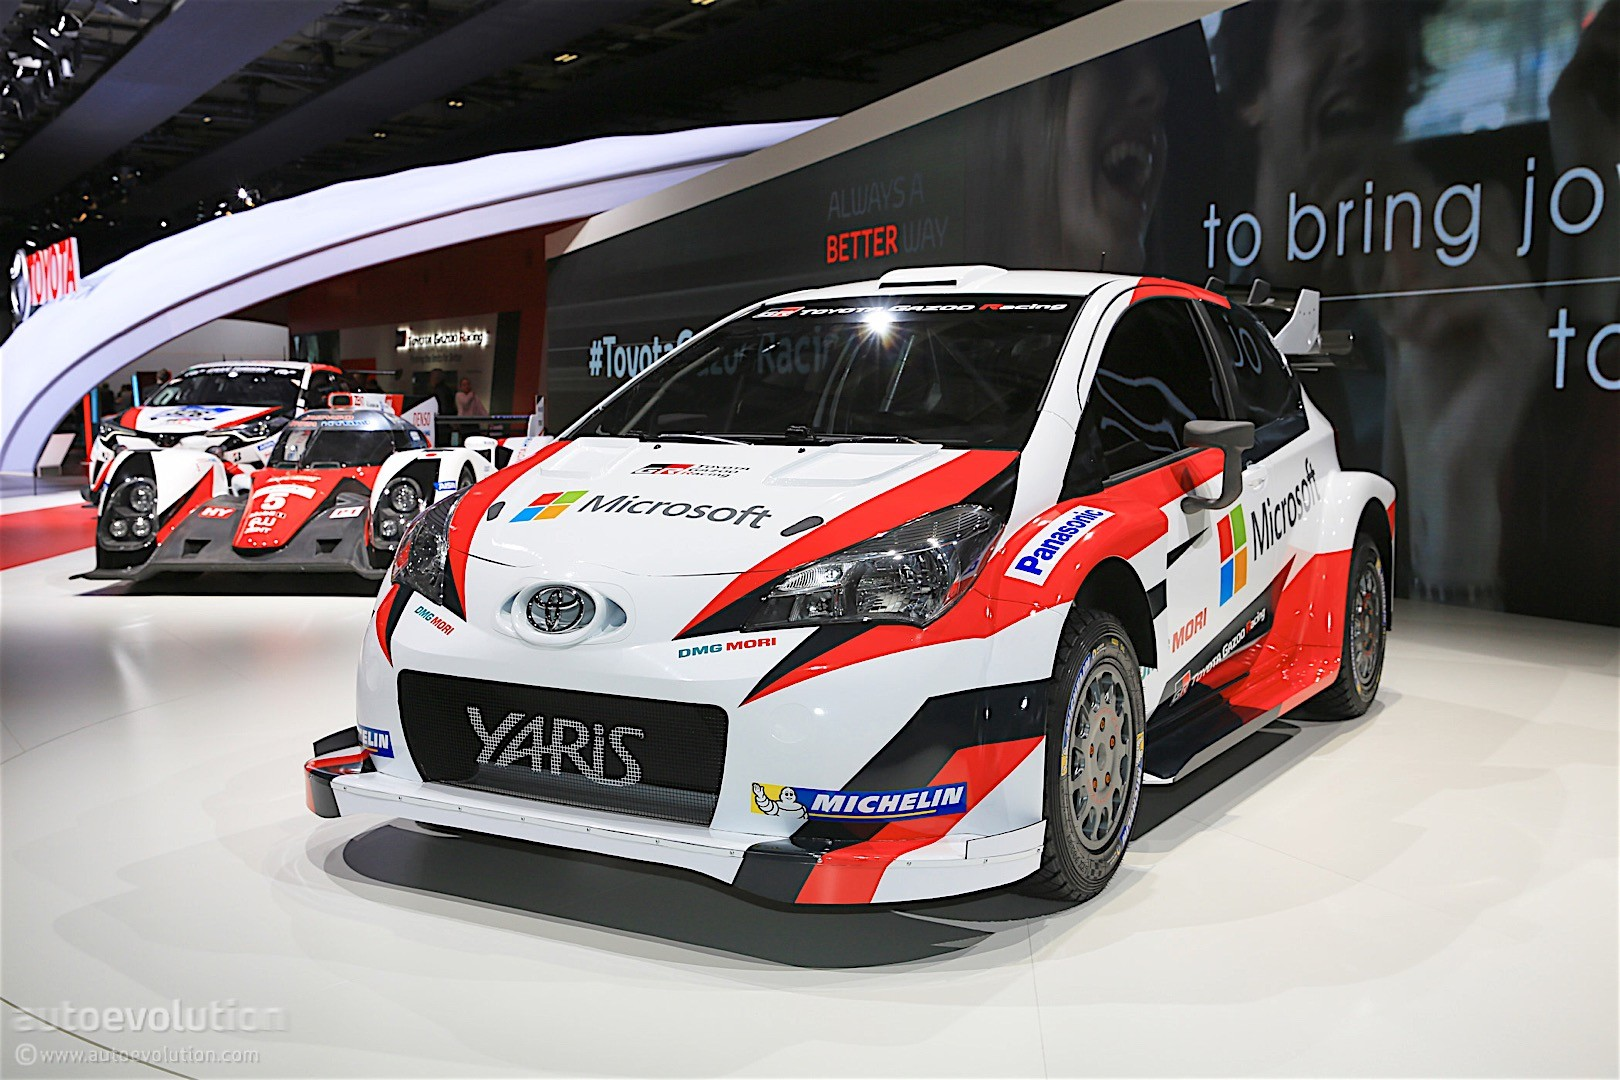 2017 Toyota Yaris Wrc Revealed Will Race Next Year With Microsoft